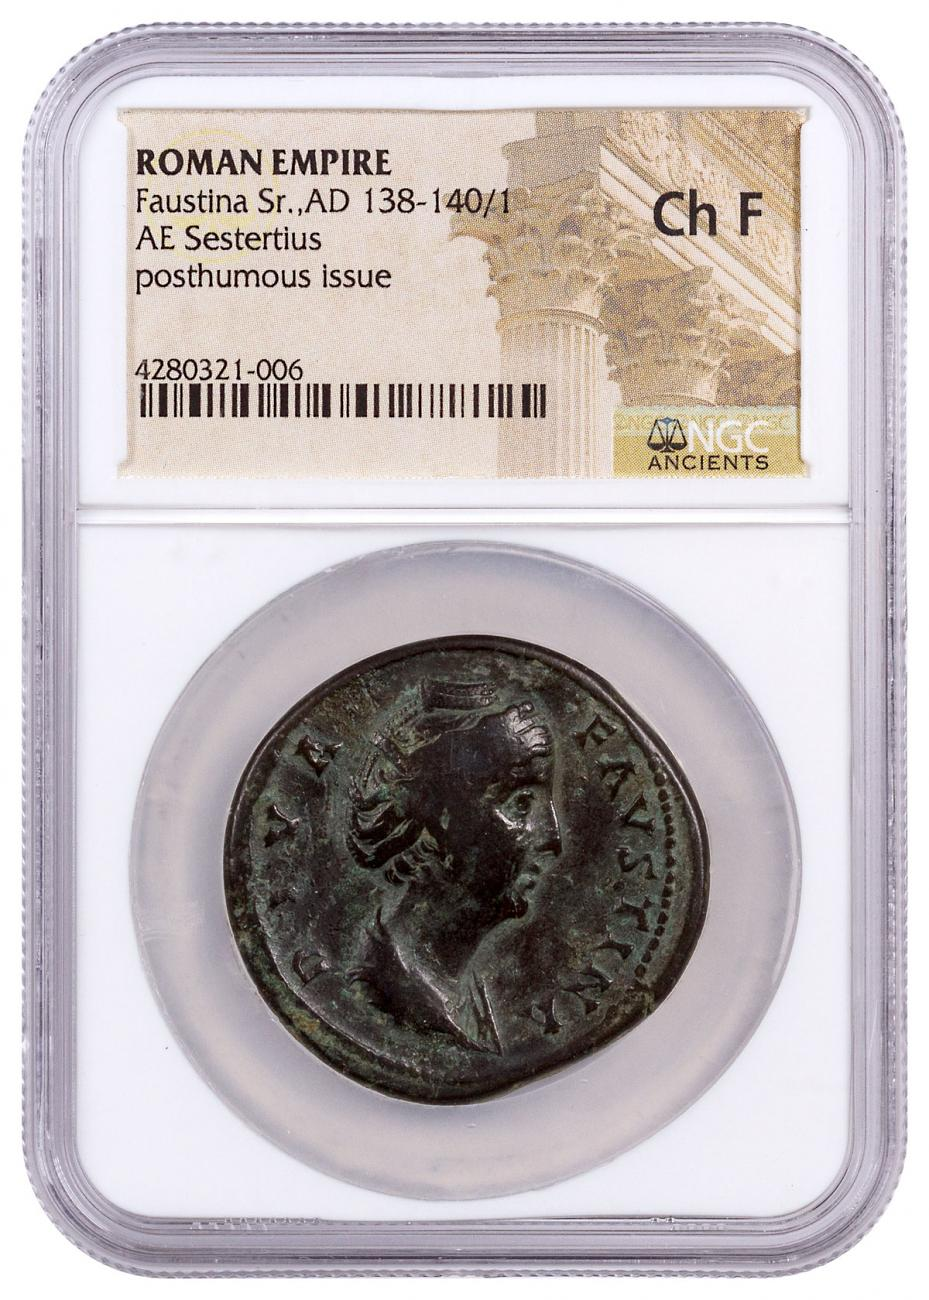 Roman Empire, Bronze Sestertius of Faustina Sr. (AD 138-140/1) - Posthumous Issue - obv. Bust/rv. Ceres NGC Ch. F [11911]